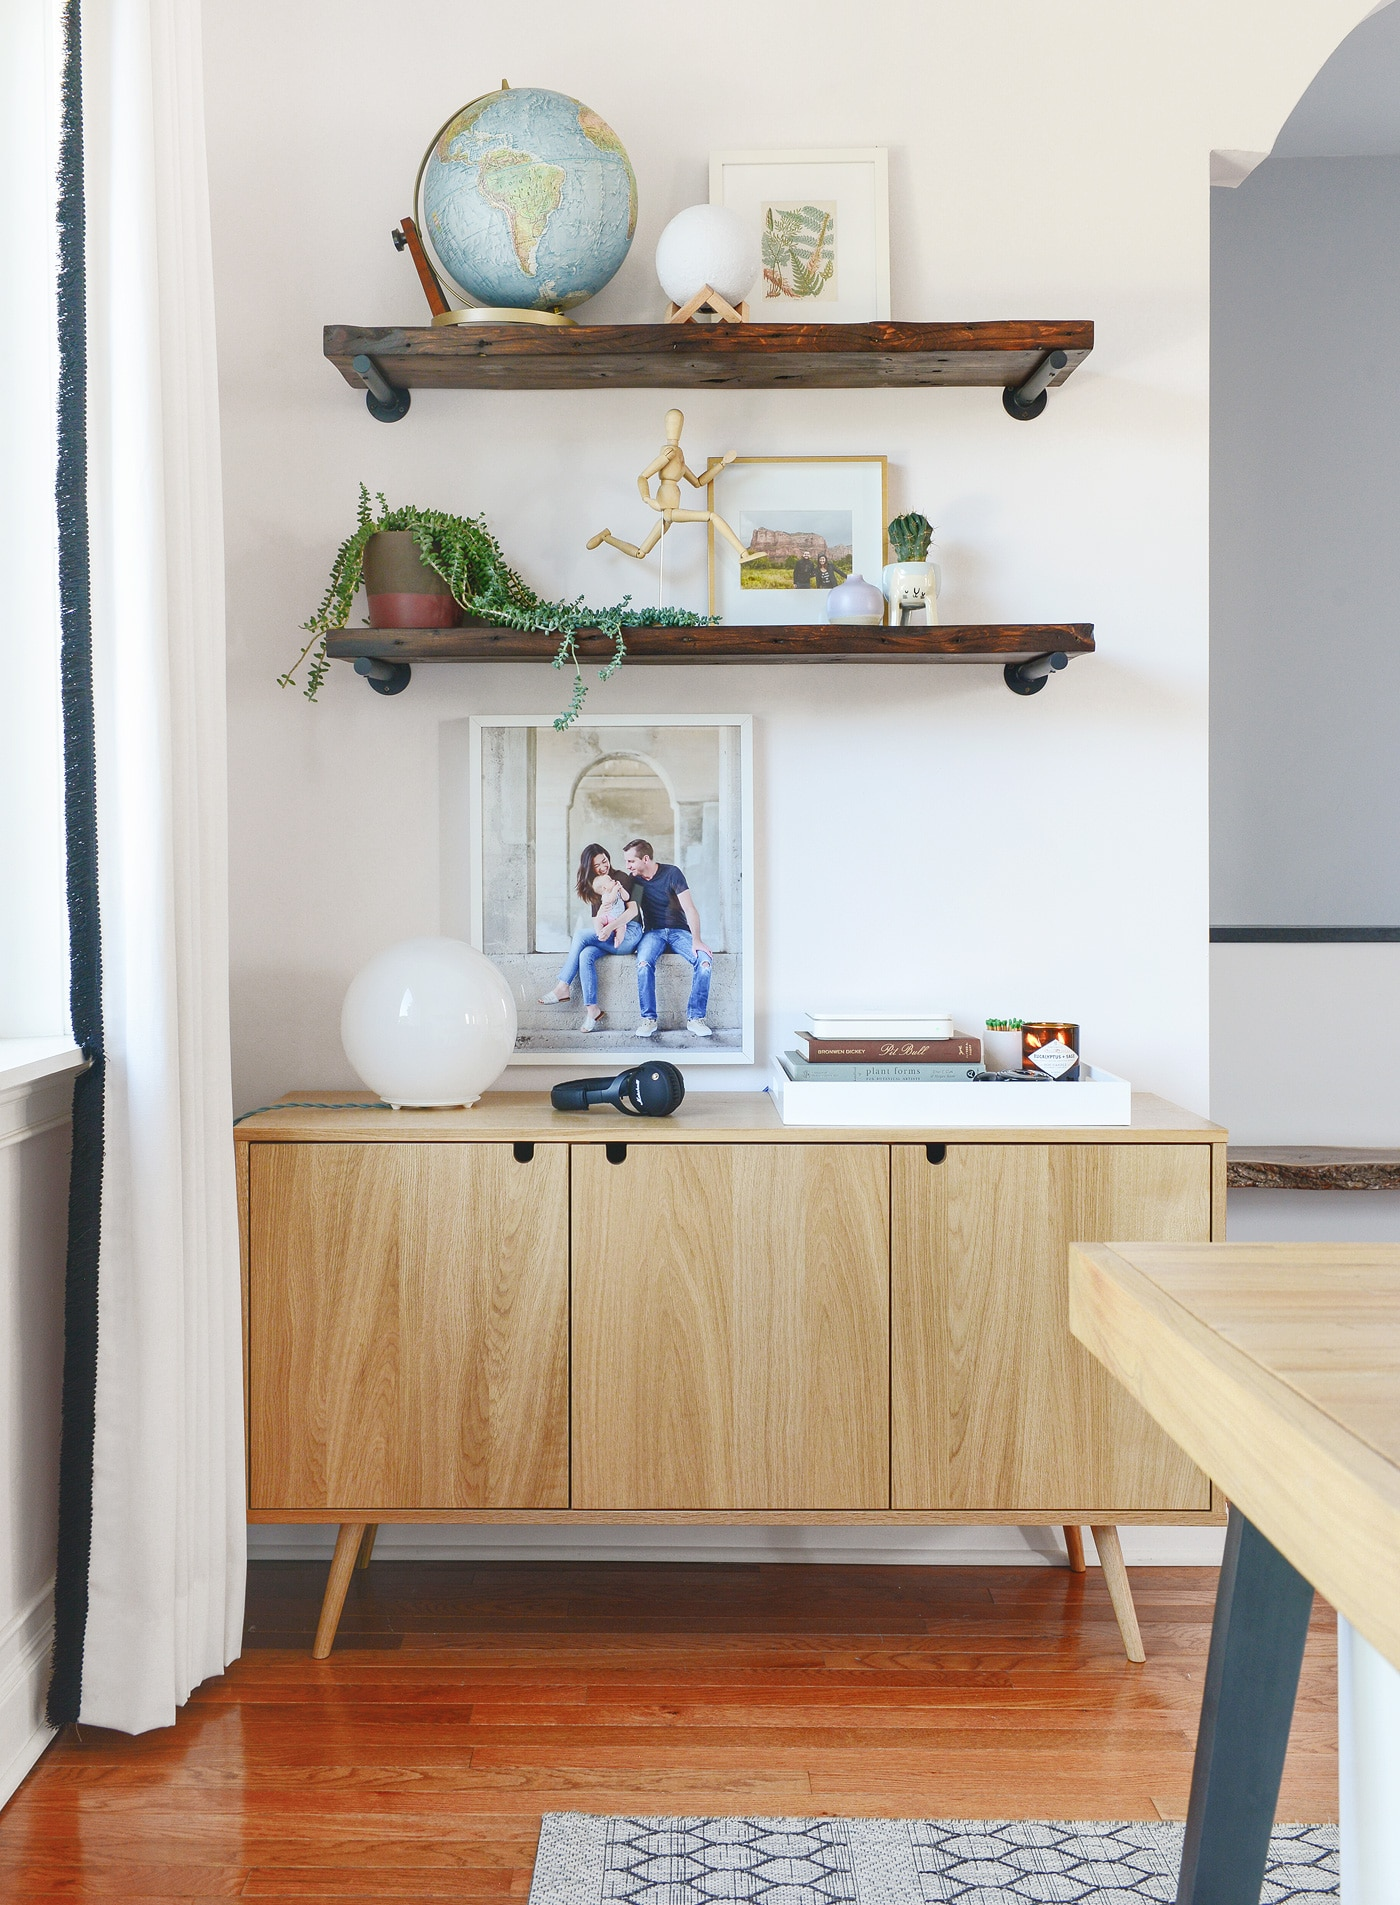 how we mix wood tones in a space   5 general rules to keep in mind   via Yellow Brick Home